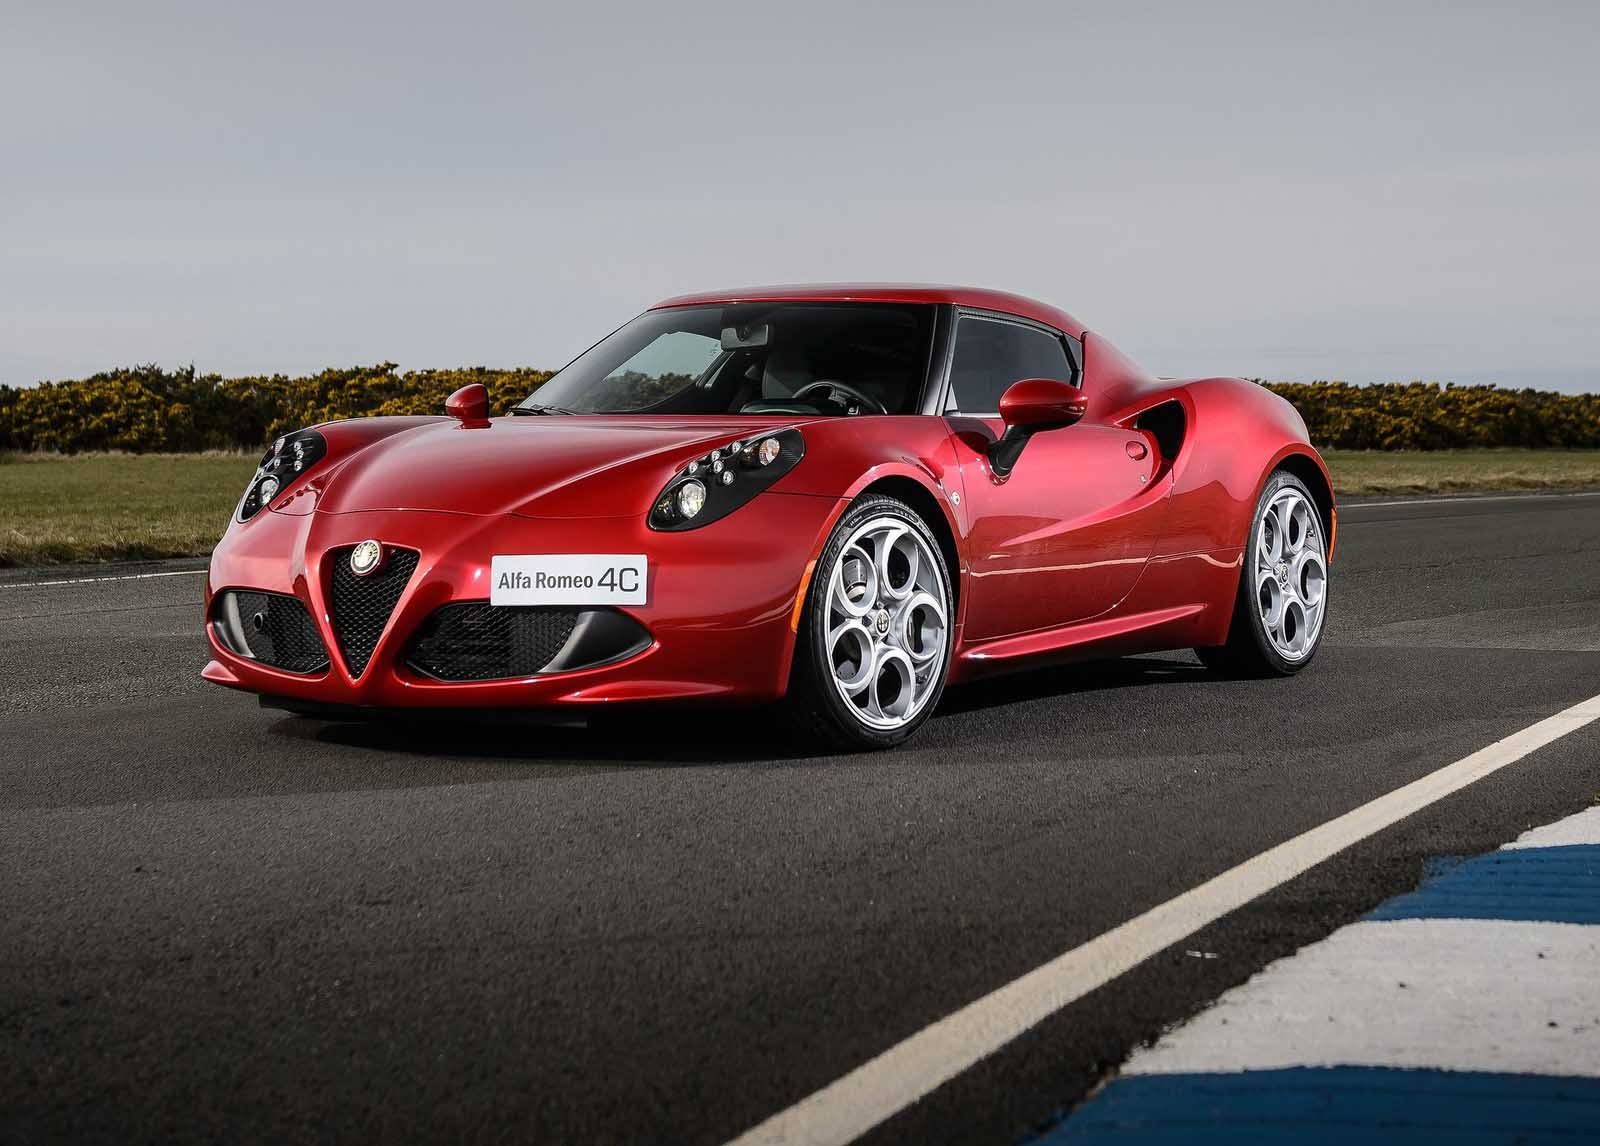 alfa romeo 4c wallpapers hd full hd pictures. Black Bedroom Furniture Sets. Home Design Ideas